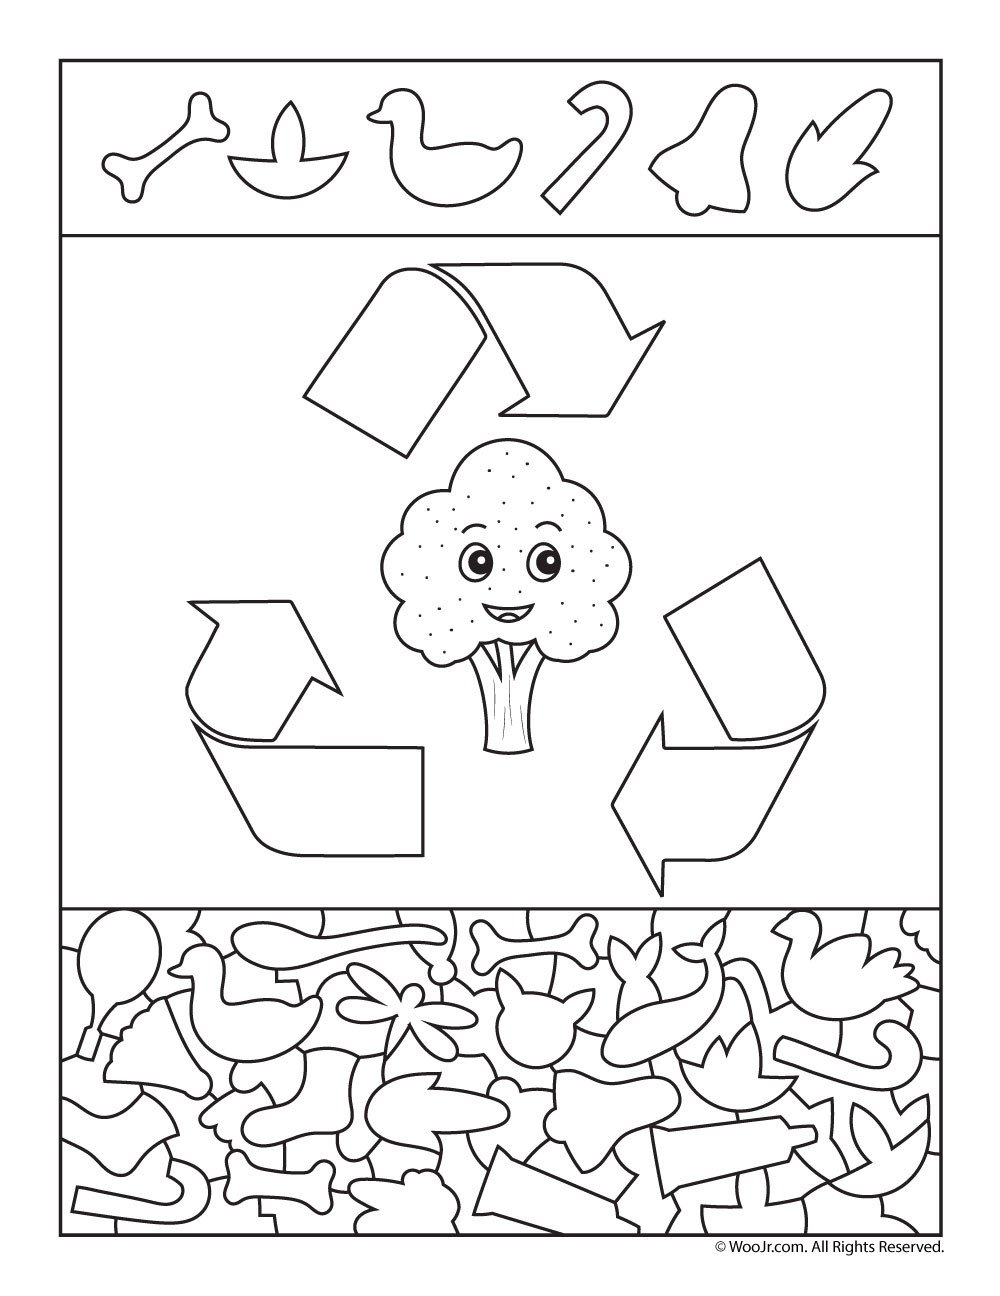 Recycle Worksheets for Preschoolers Please Recycle Preschool Activity Page